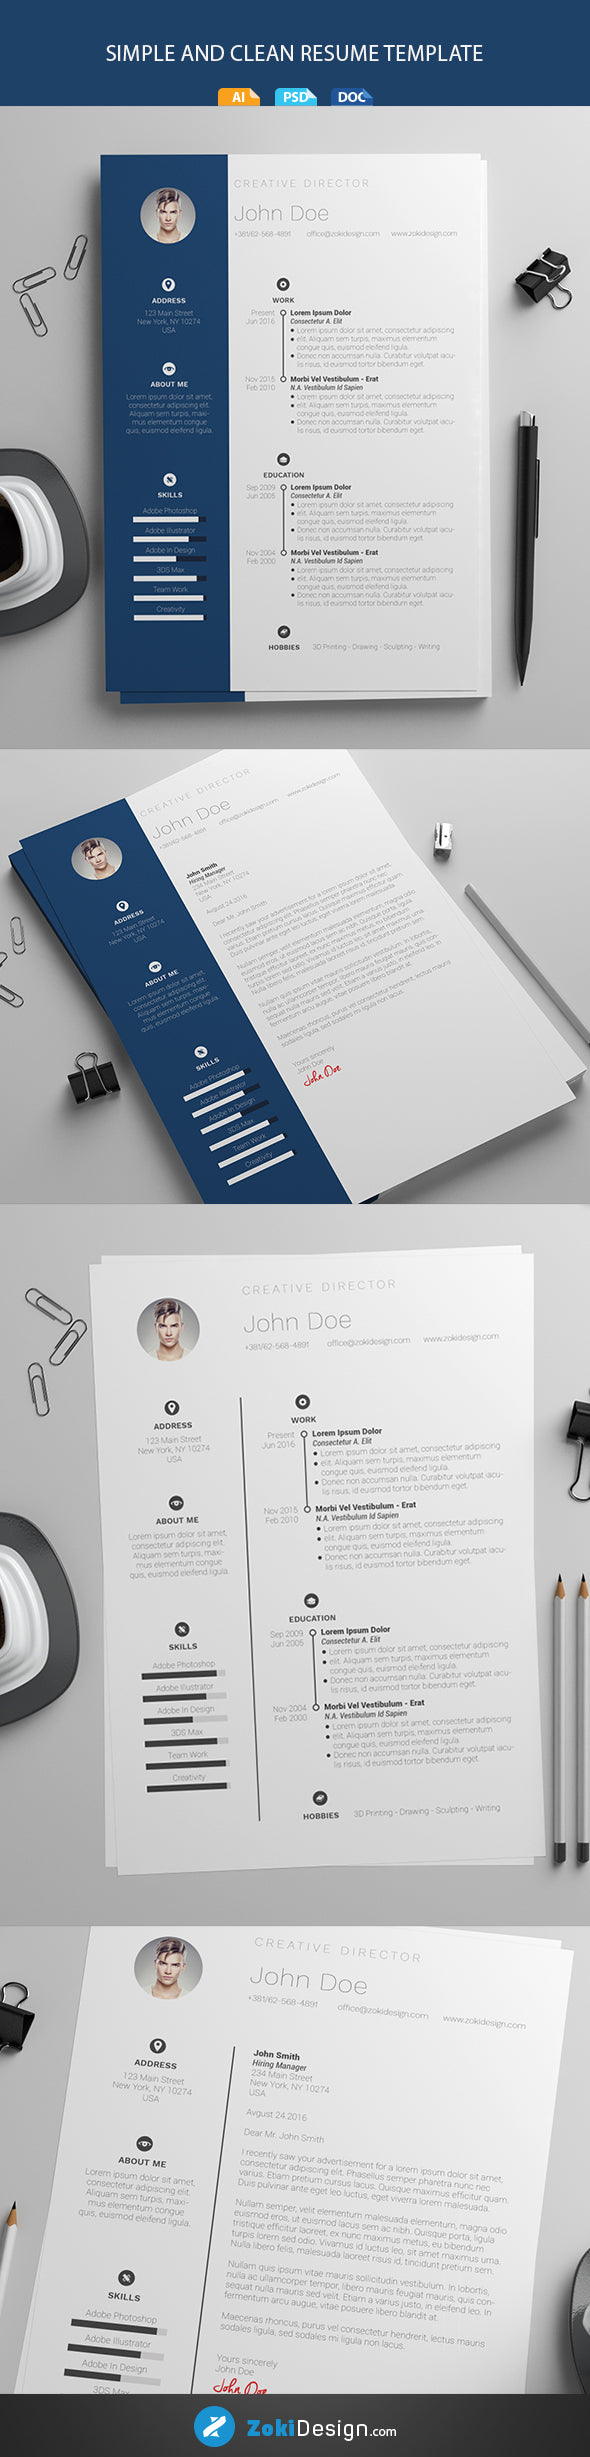 Free Clean Modern Resume And Cv Template In Microsoft Word Doc